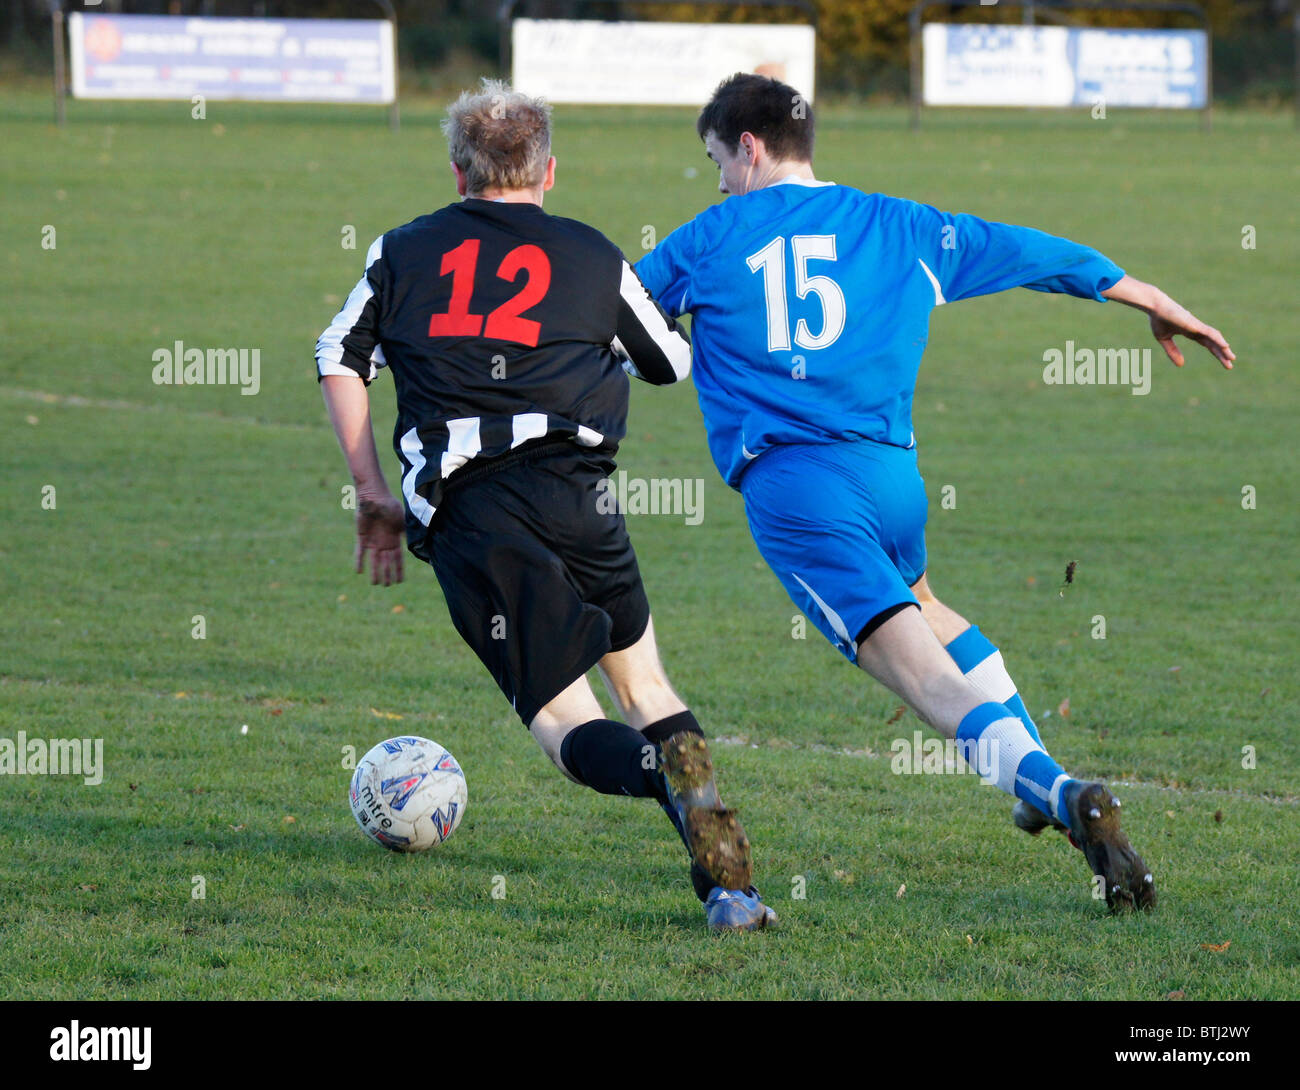 Kelso, Scotland - rival players in amateur weekend league football clash in a tackle for possesion of the ball - Stock Image